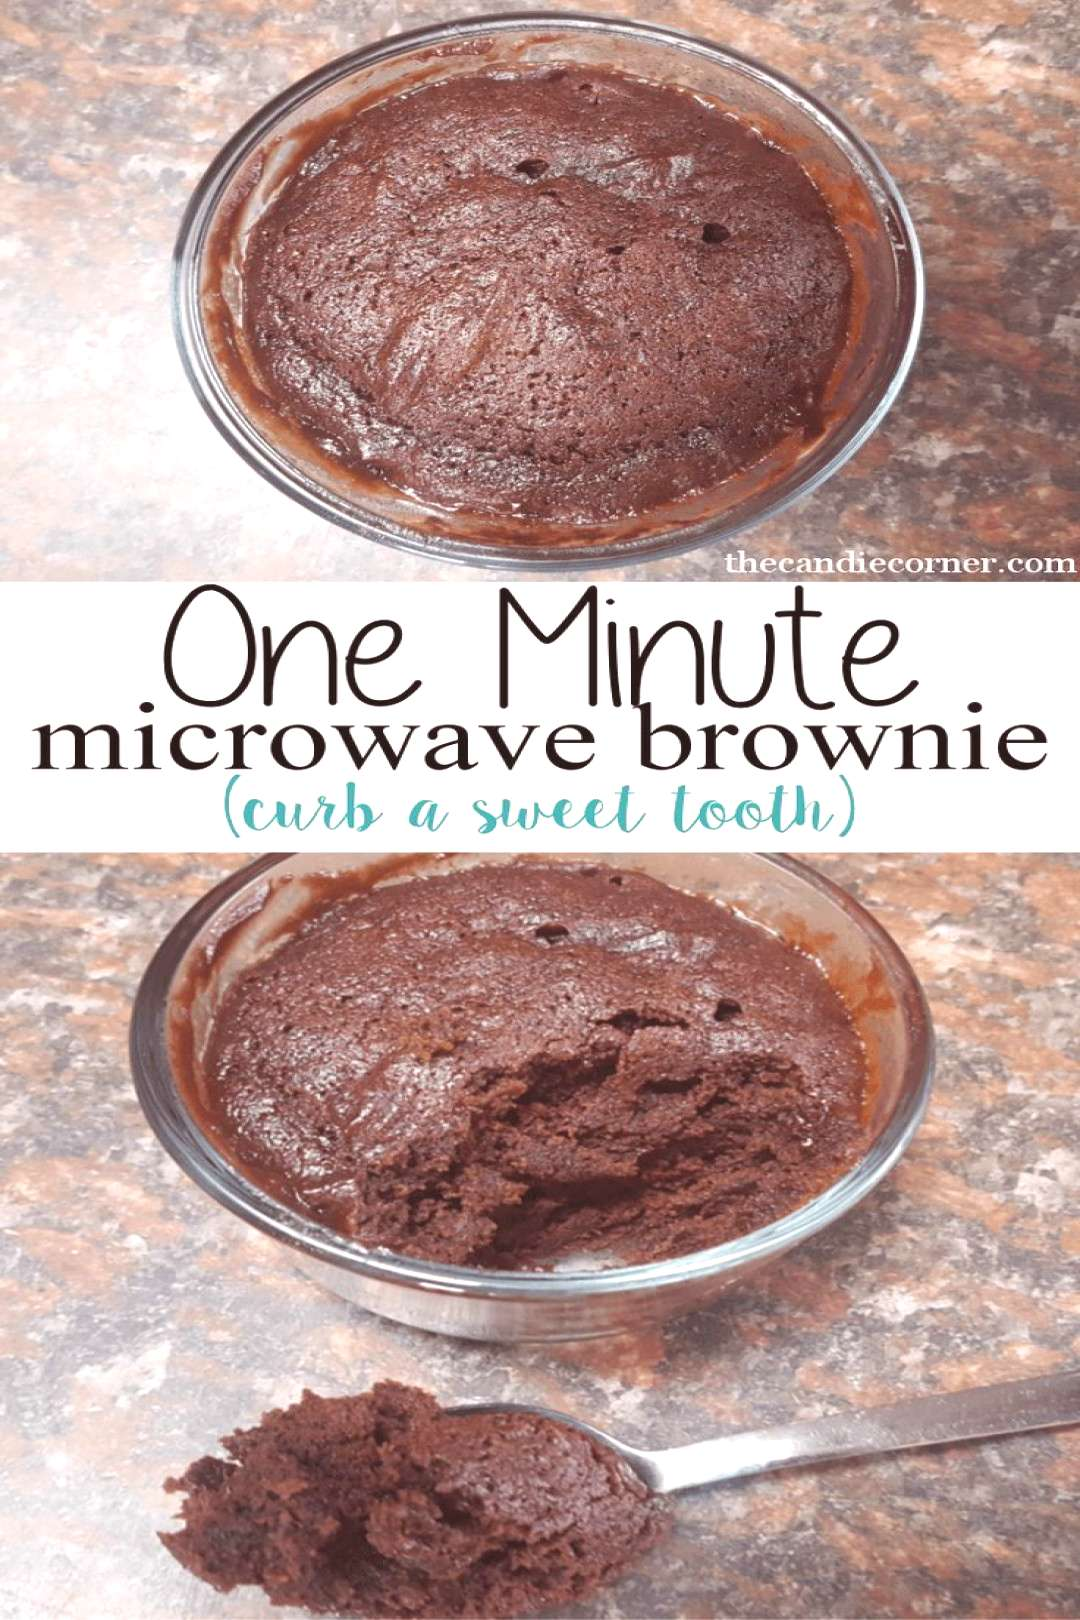 One minute microwave brownie. How to curb a sweet tooth easily.